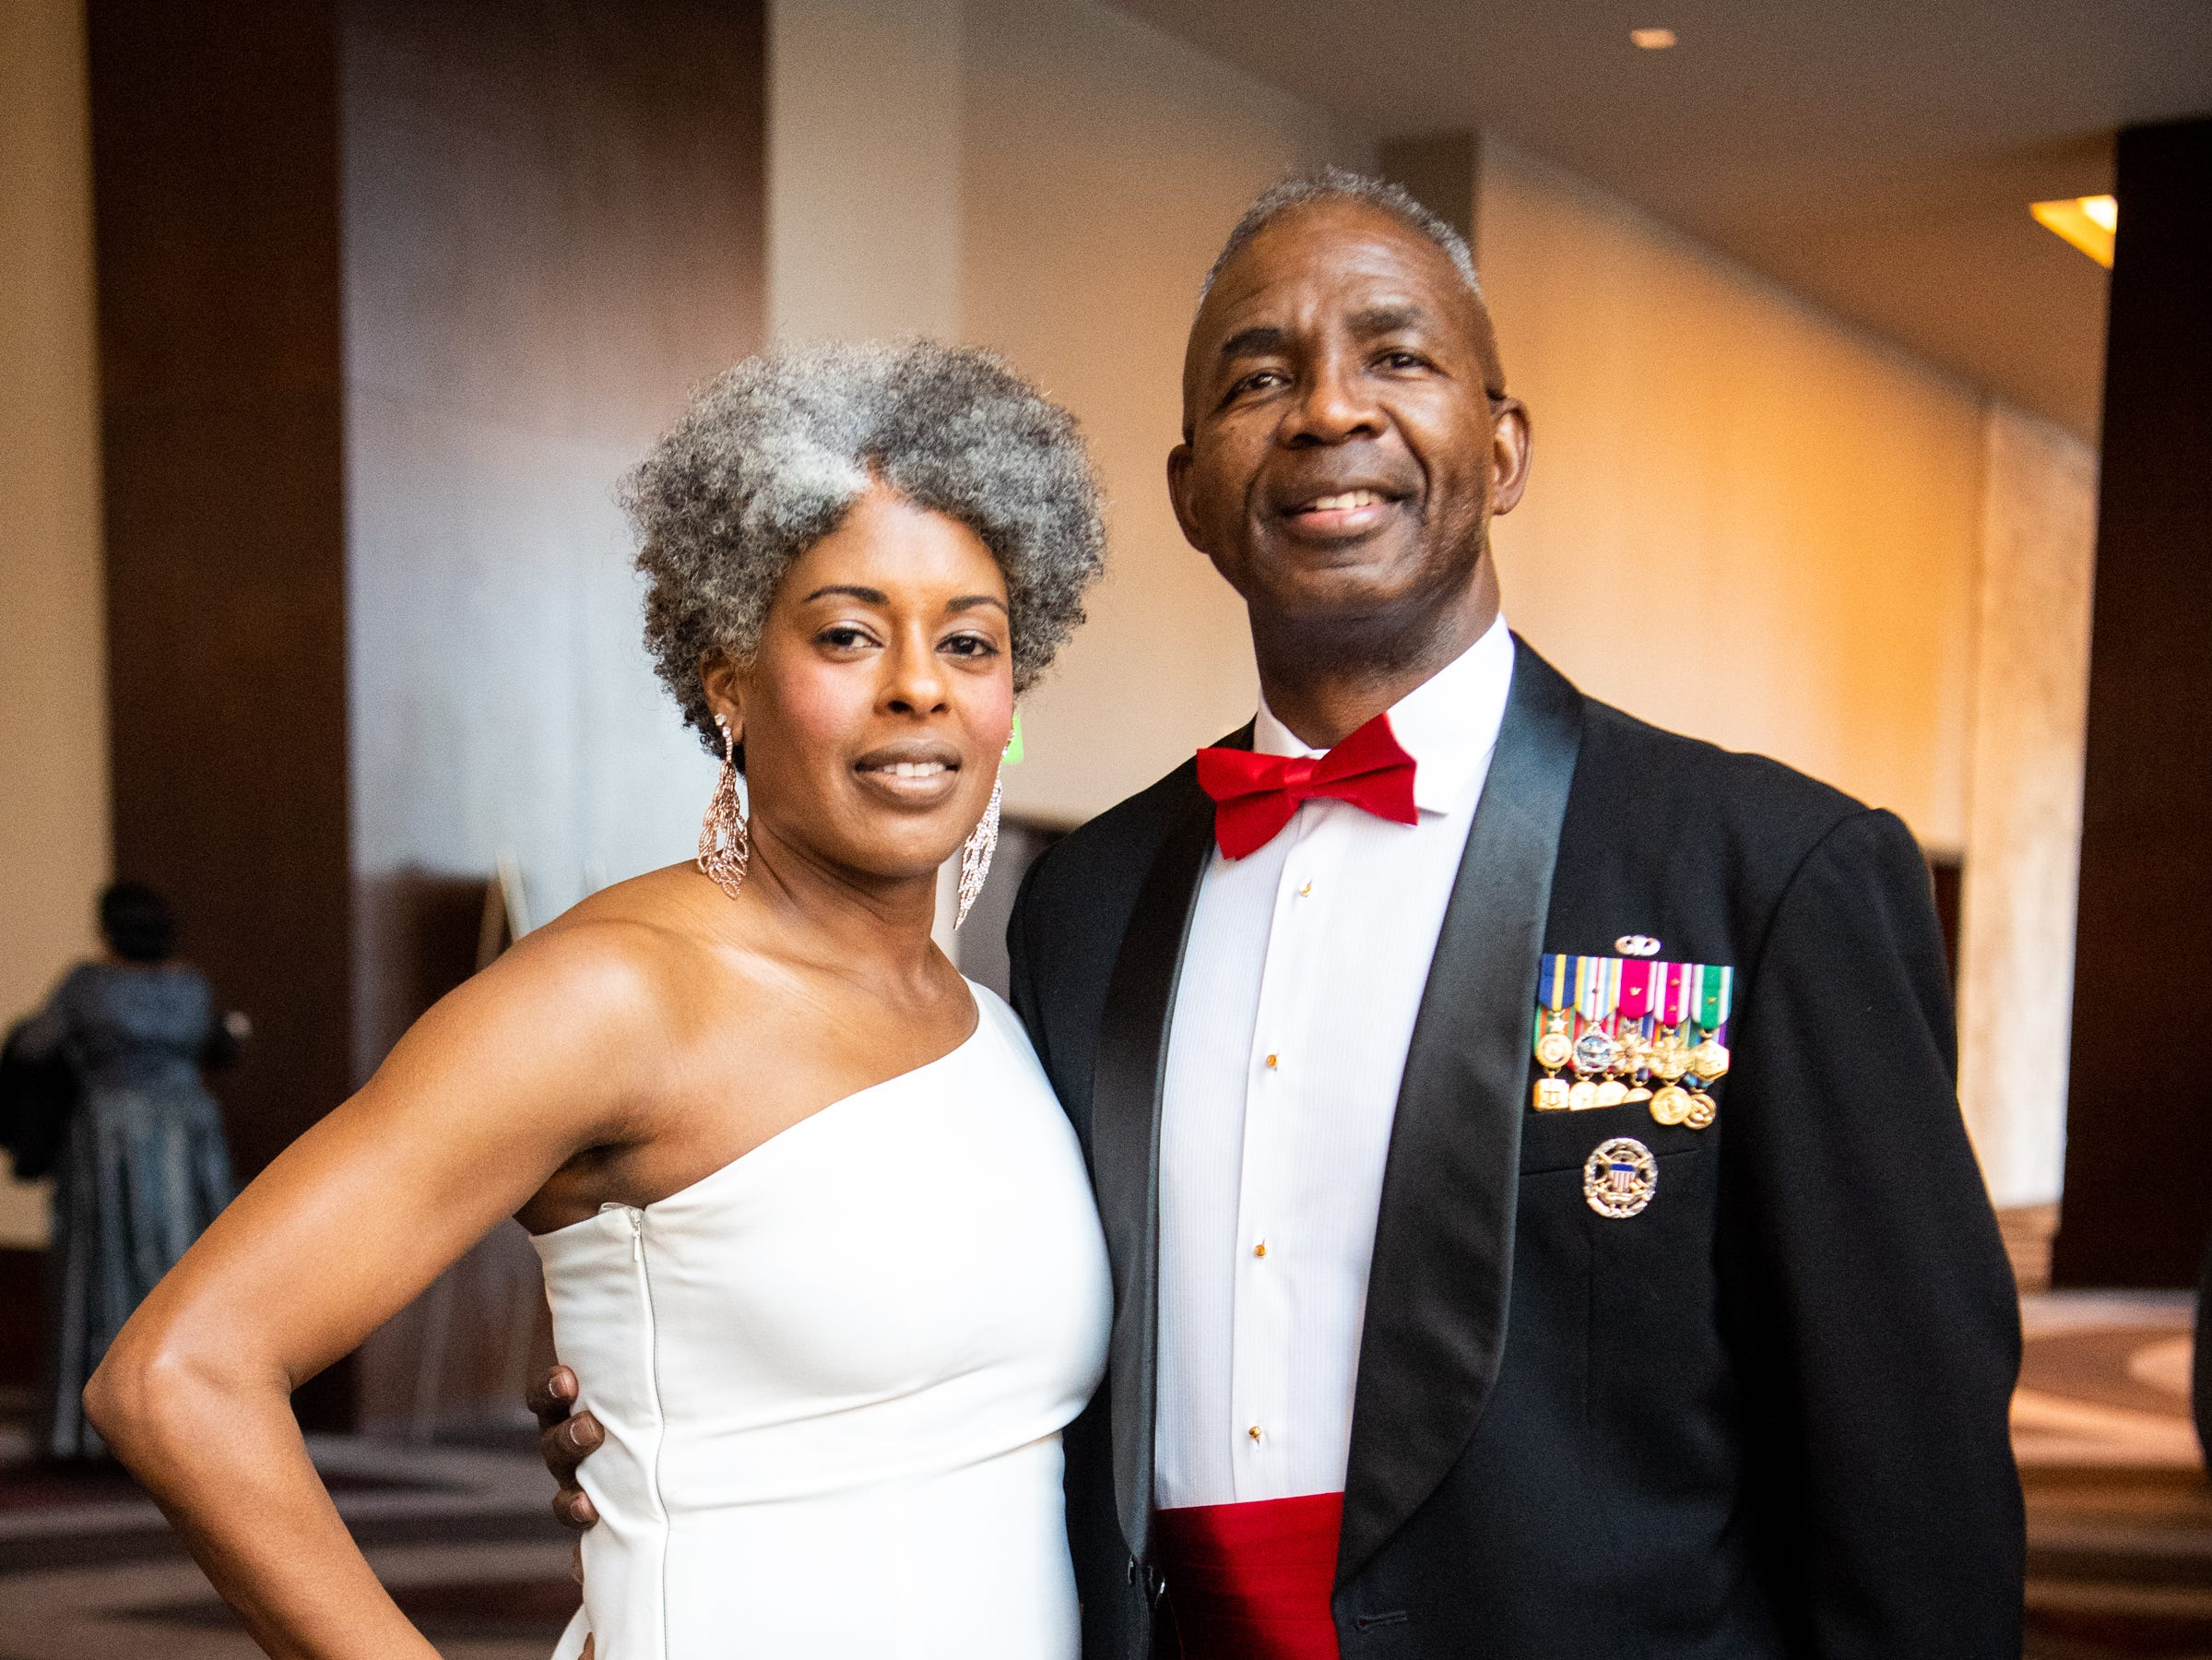 APSU alum and former employee Janet Wilson and retired Lt. Gen. Ron Bailey, APSU's vice president of external affairs pose for a photo during Austin Peay State University's annual Candlelight Ball at the Omni Nashville Hotel Saturday, March 16, 2019, in Nashville, Tenn.